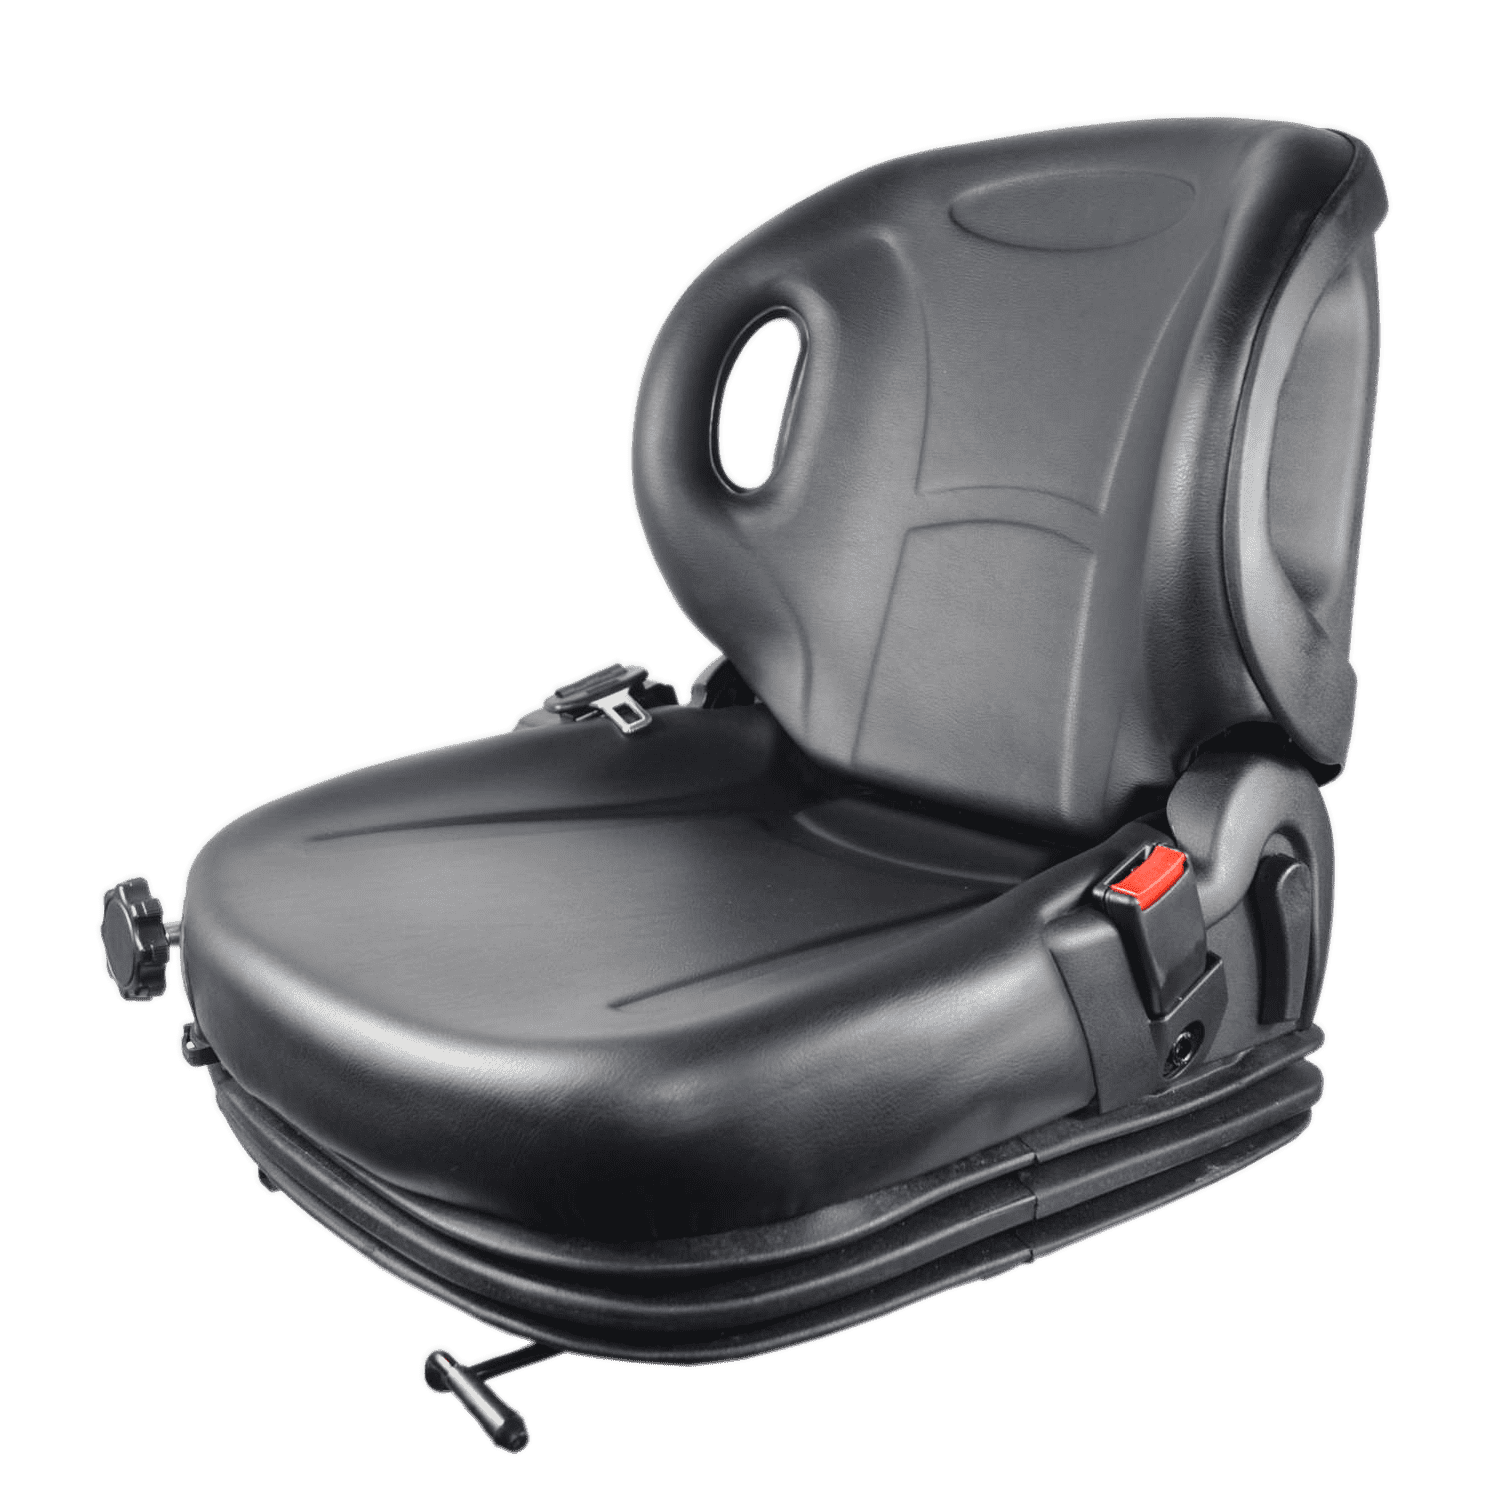 YY53 Forklift Seat with mechanical suspension Featured Image